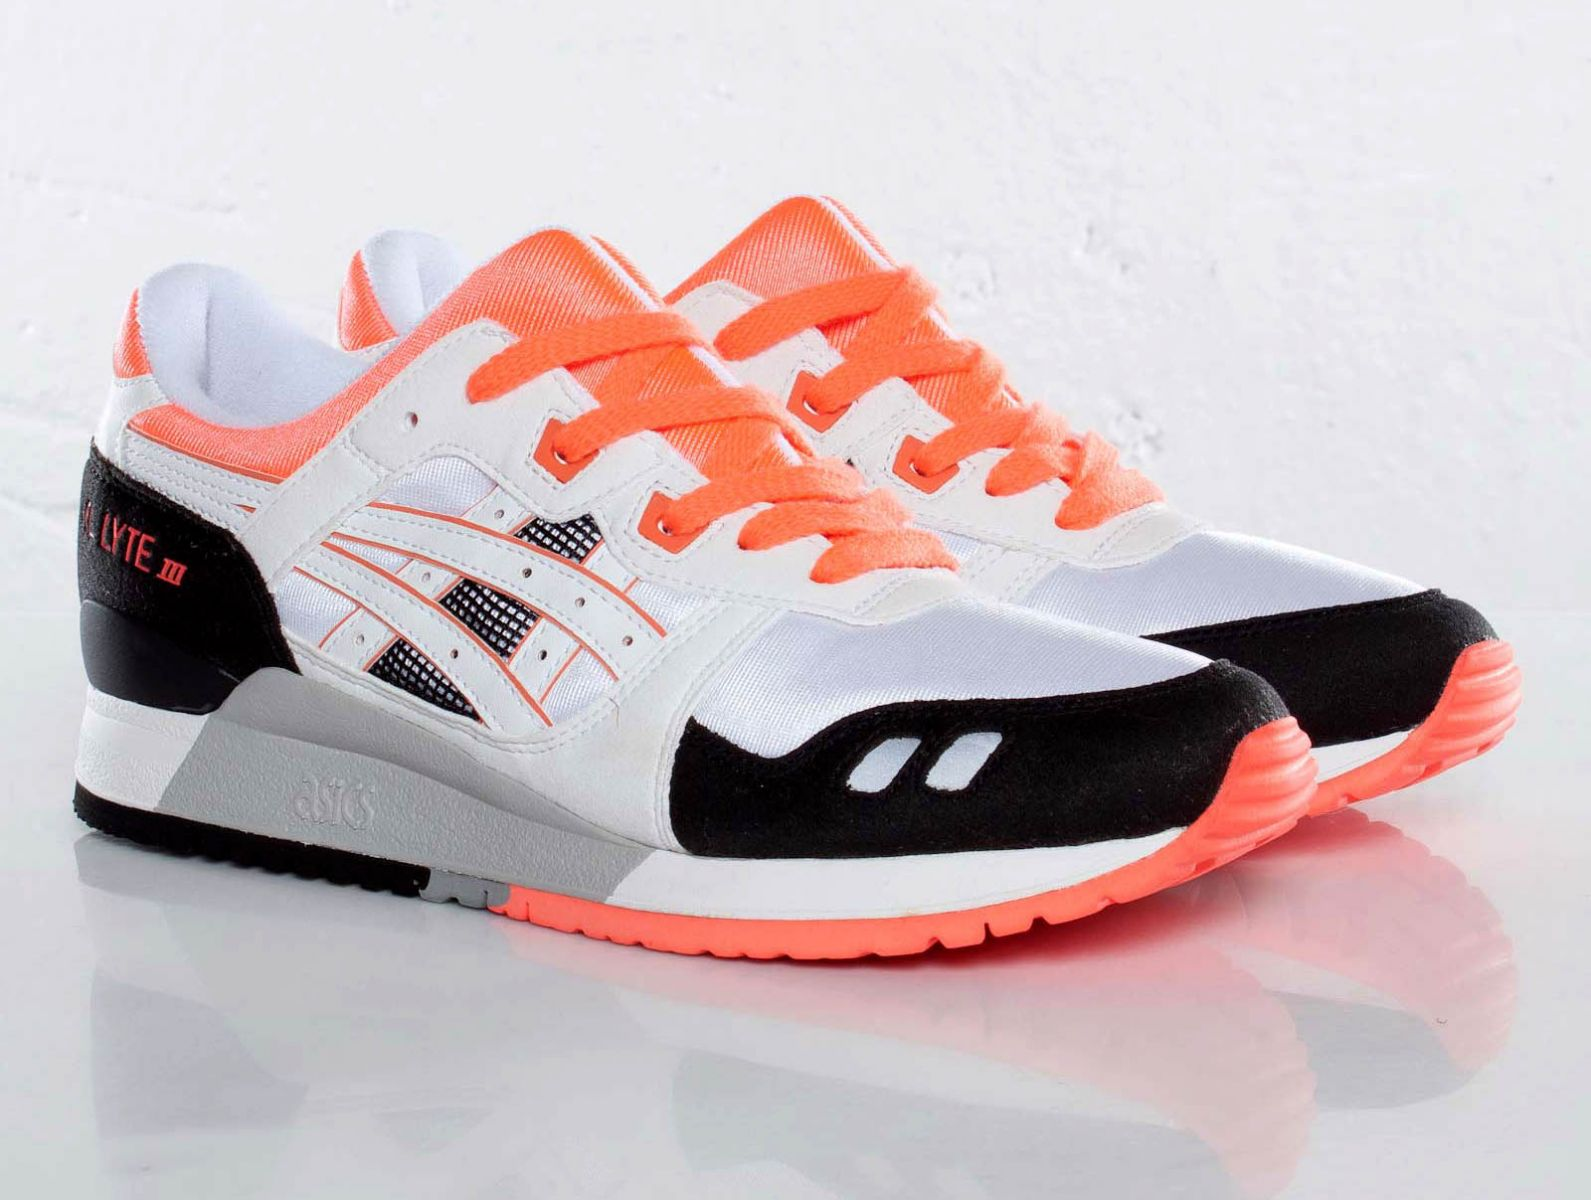 asics gel lyte iii white/black-infrared